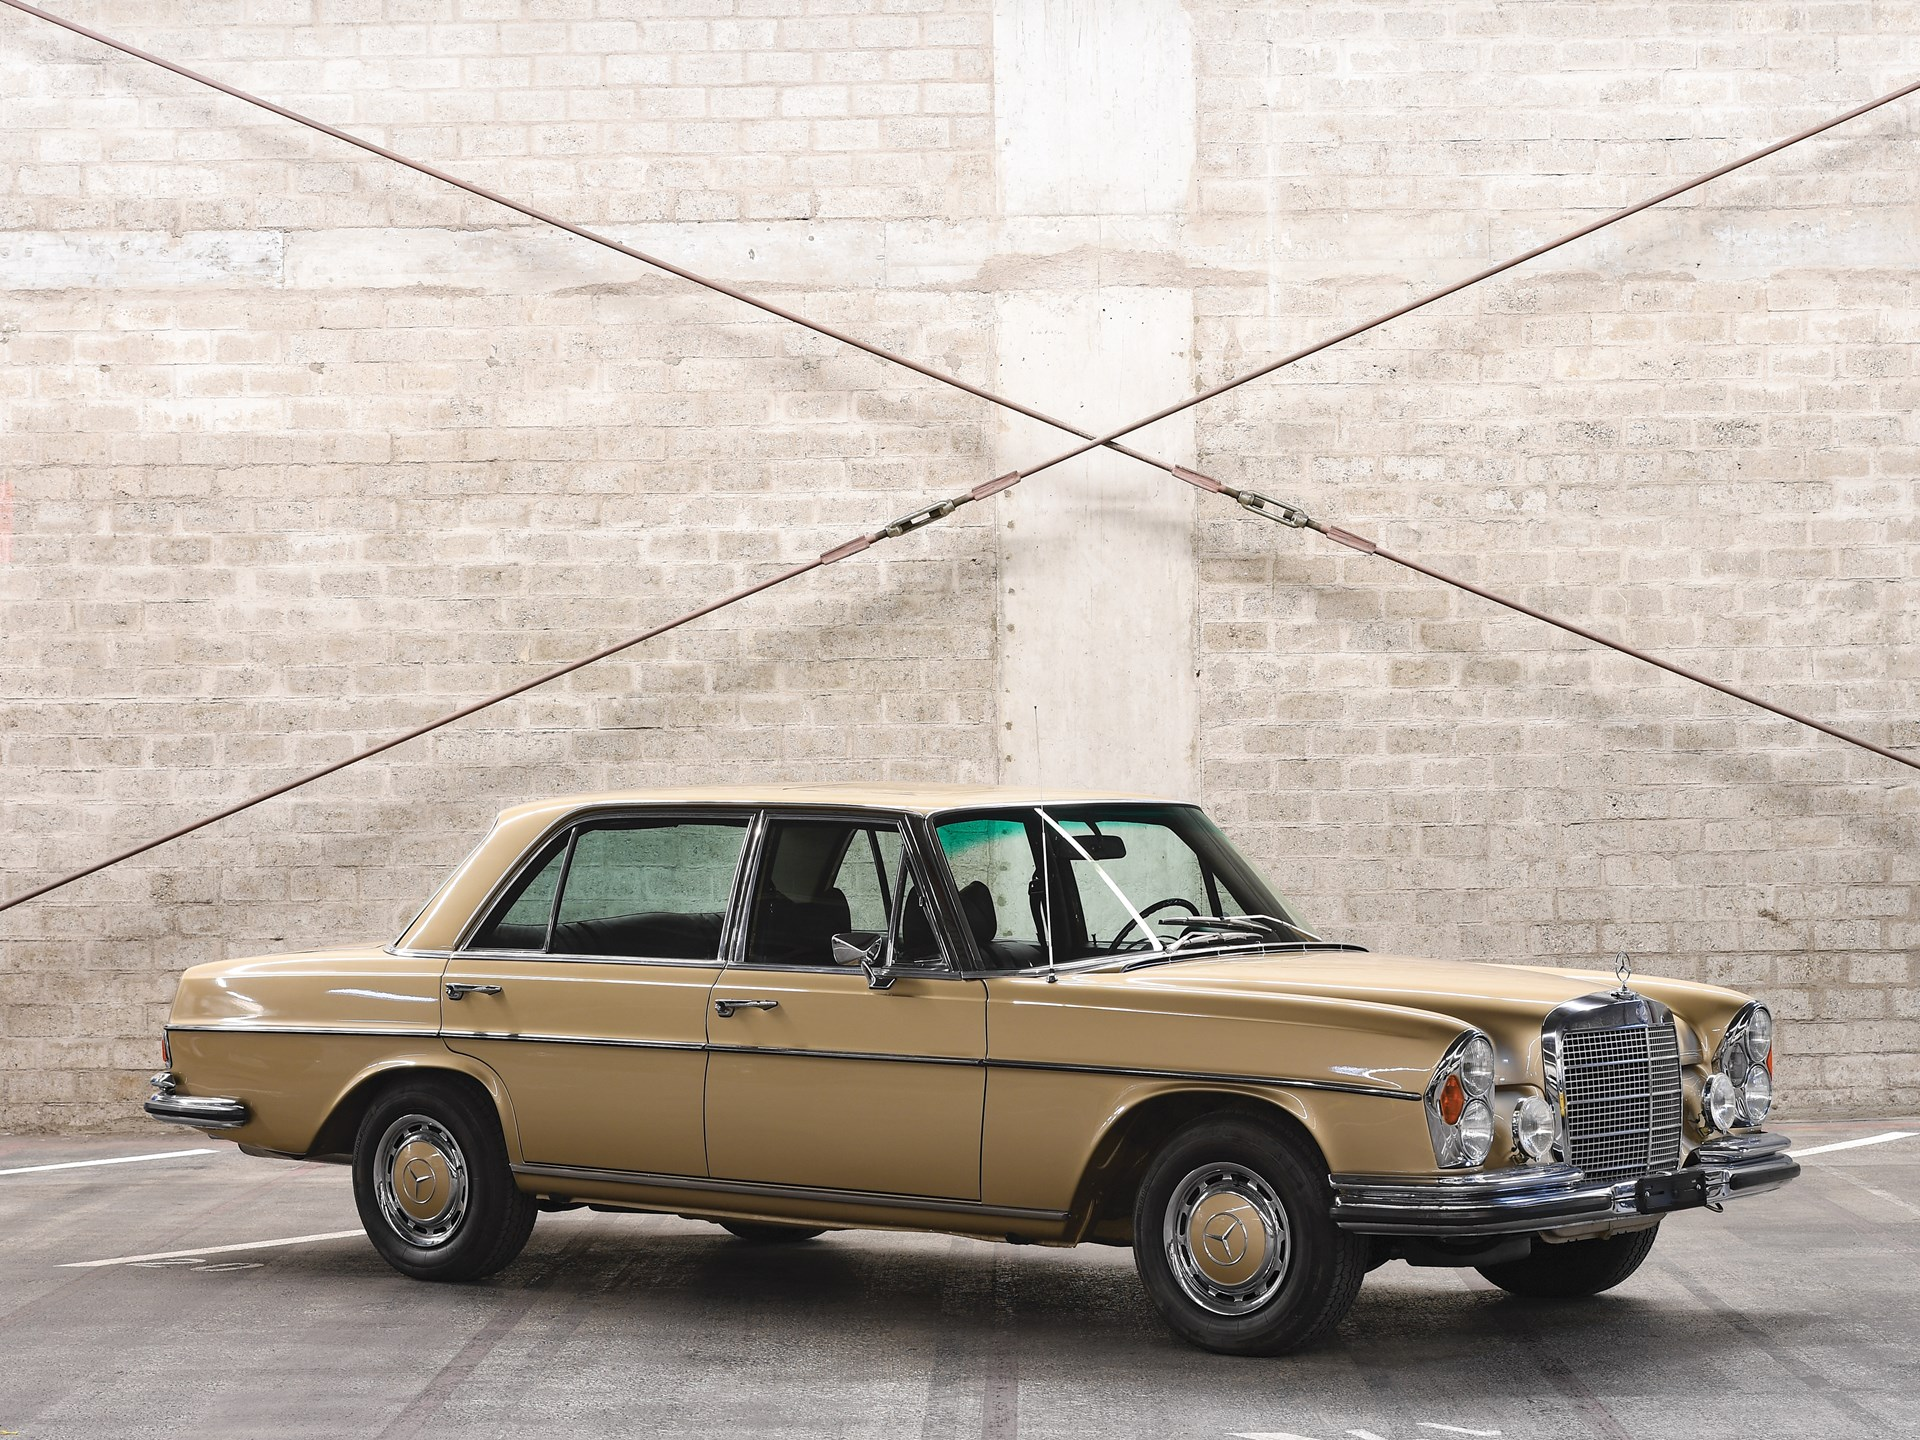 RM Sotheby's - 1969 Mercedes-Benz 300 SEL 6 3 Saloon | Paris